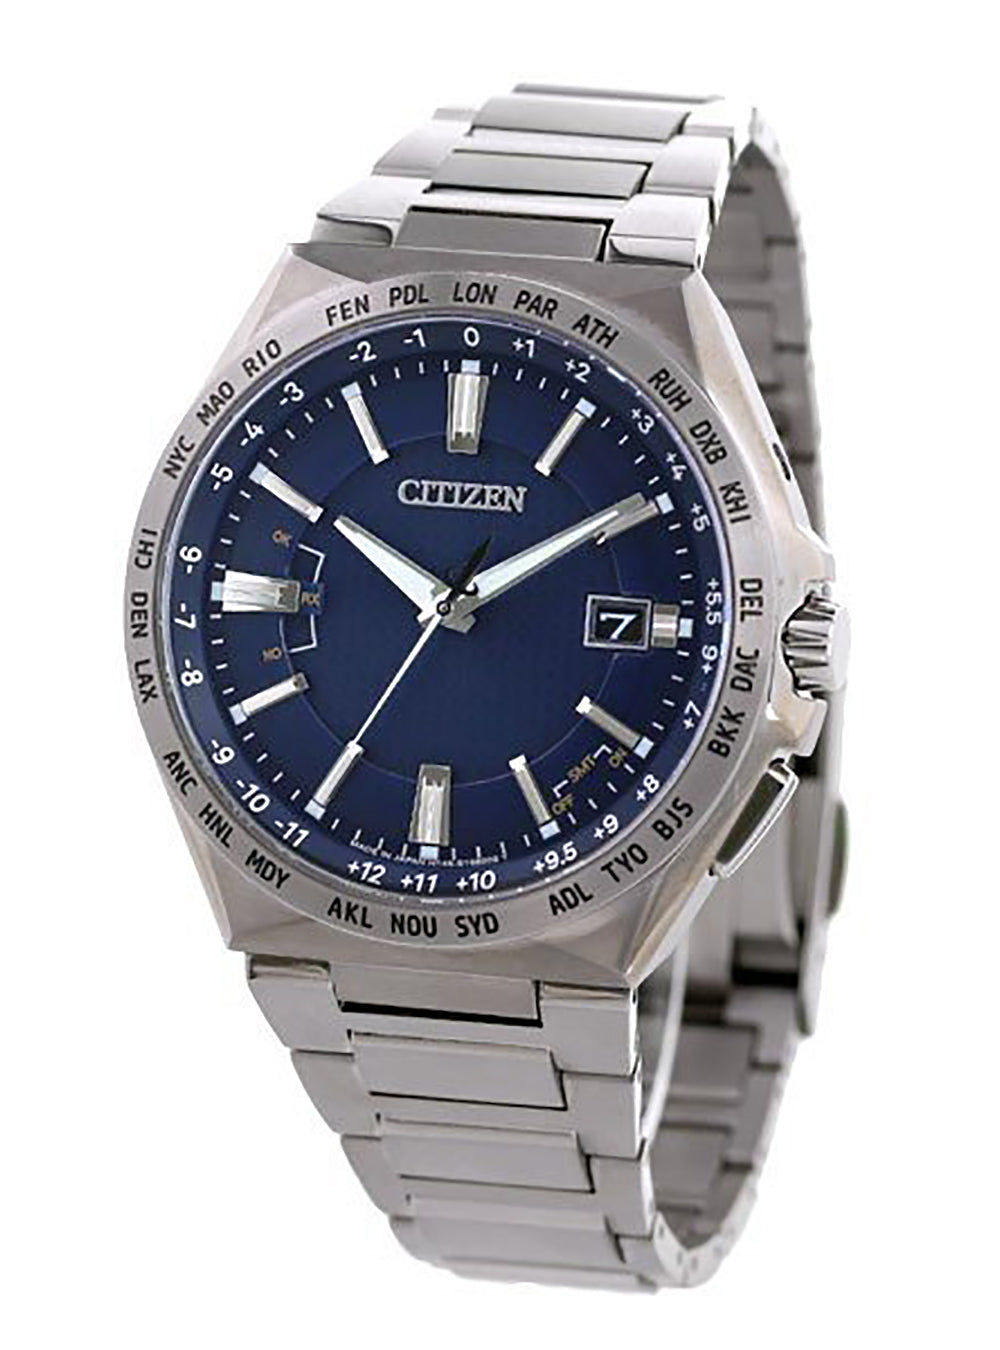 CITIZEN ATTESA ACT LINE CB0210-54L MADE IN JAPAN JDM